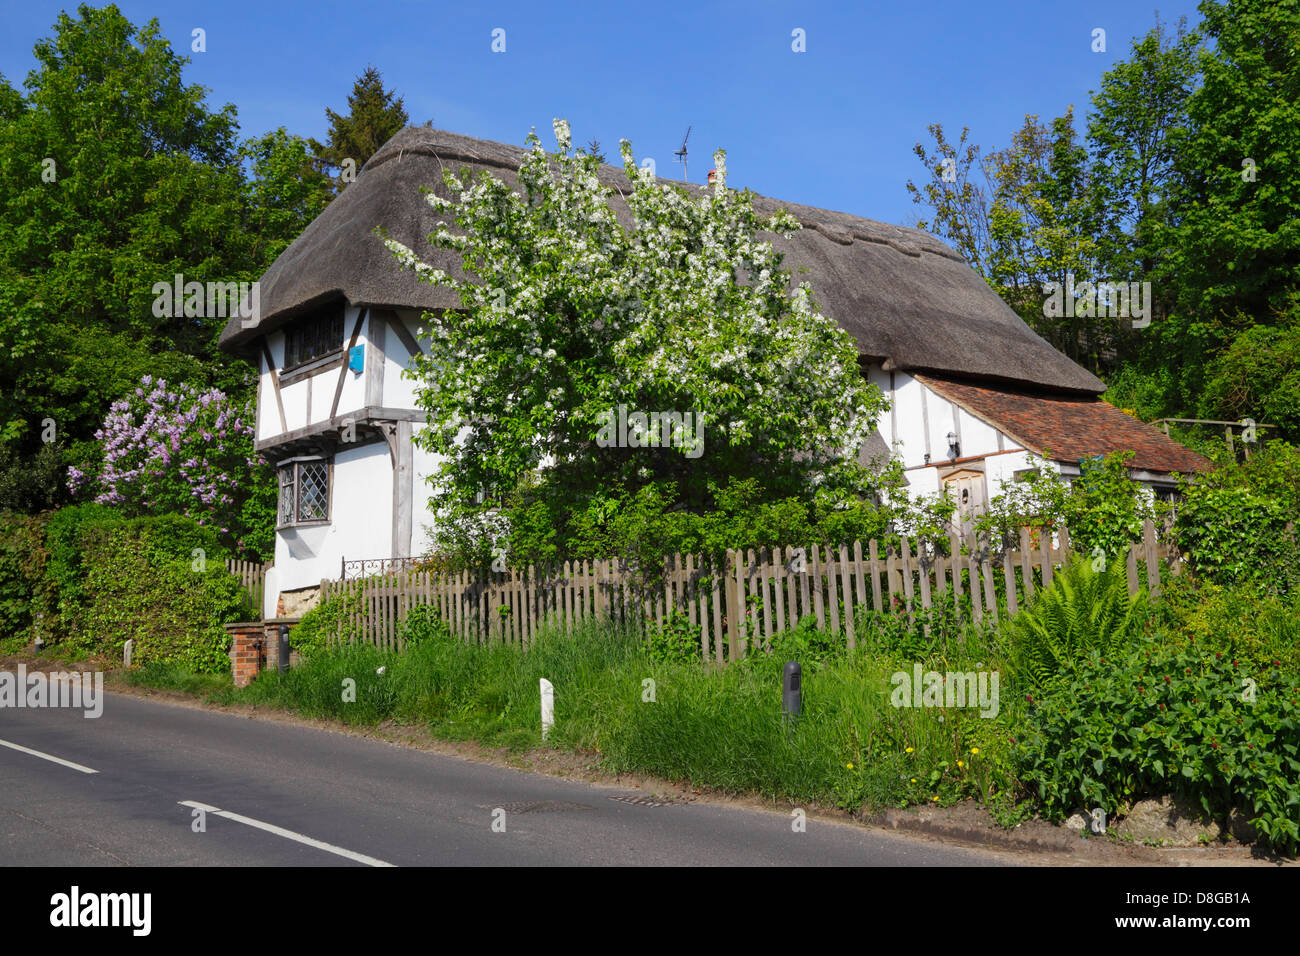 Thatched Cottage Pluckley Kent England UK GB - Stock Image